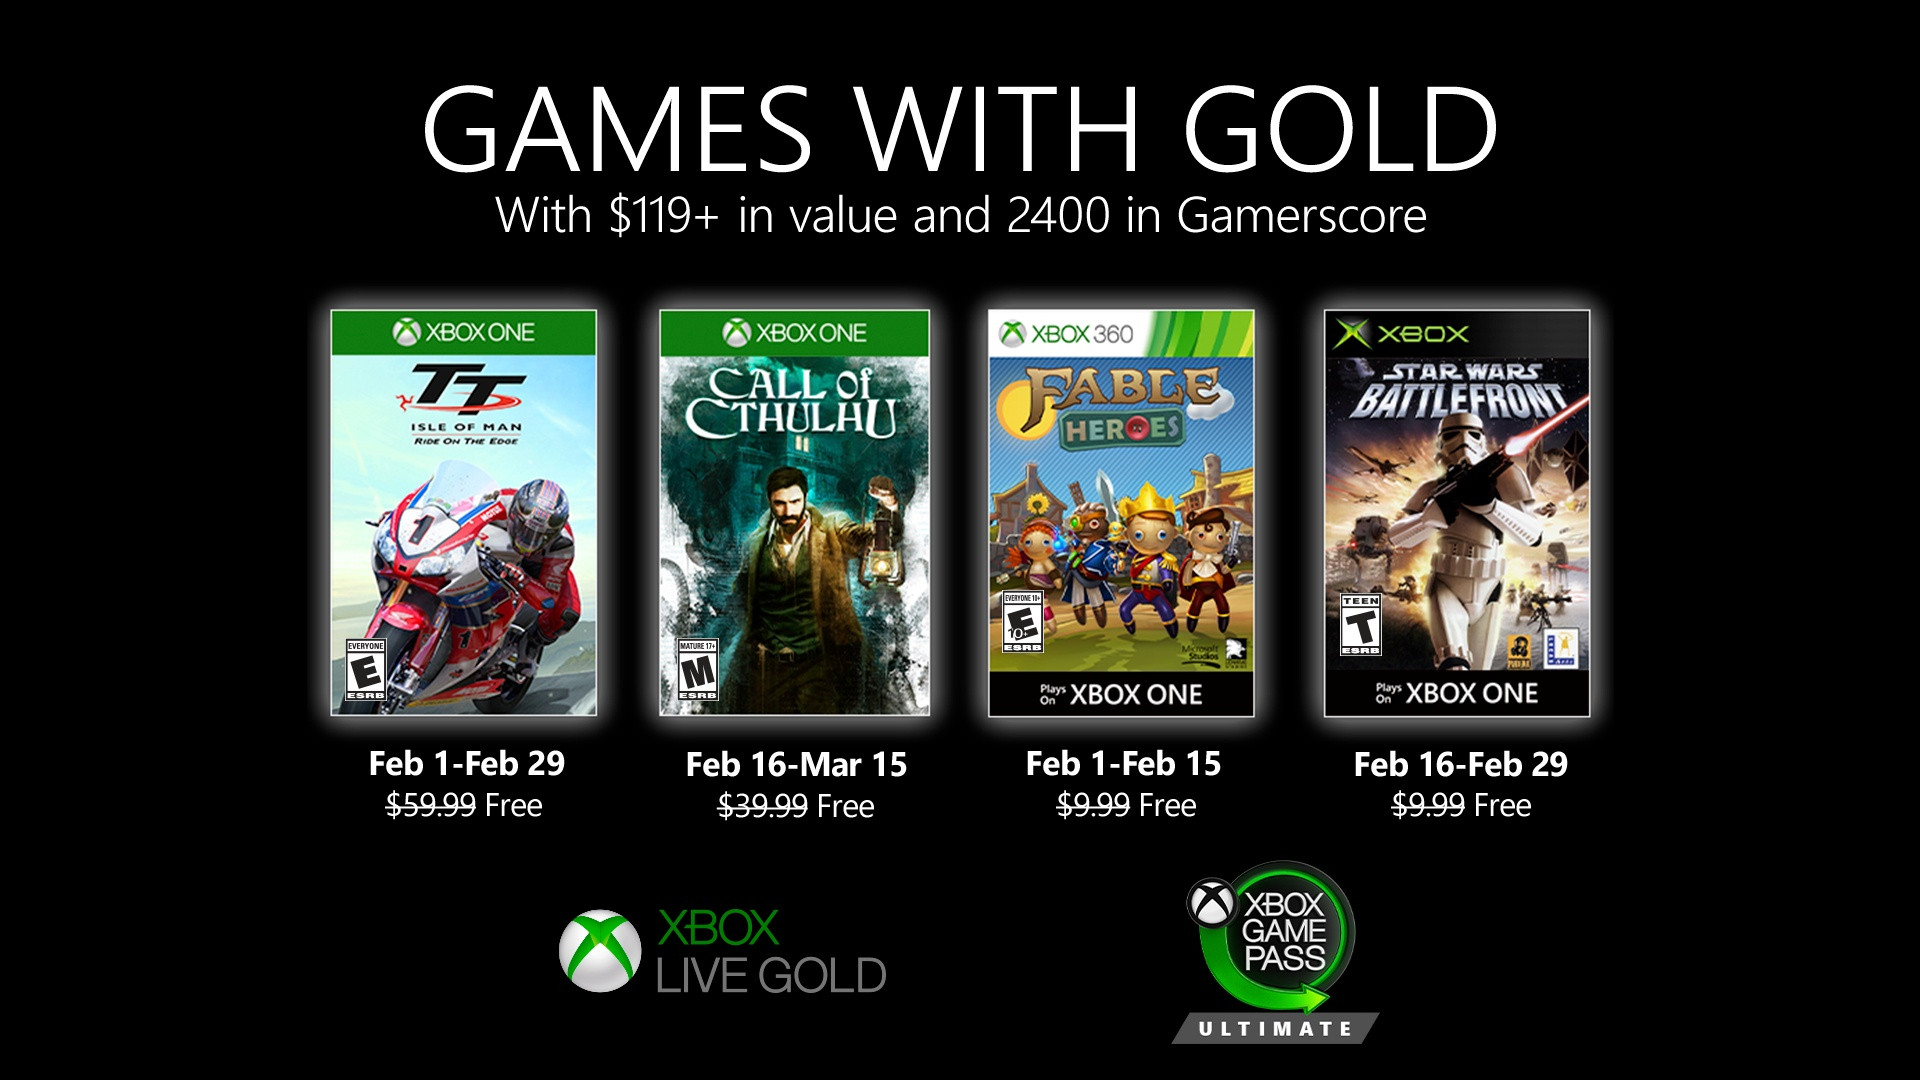 These are the Games with Gold games of February 2020